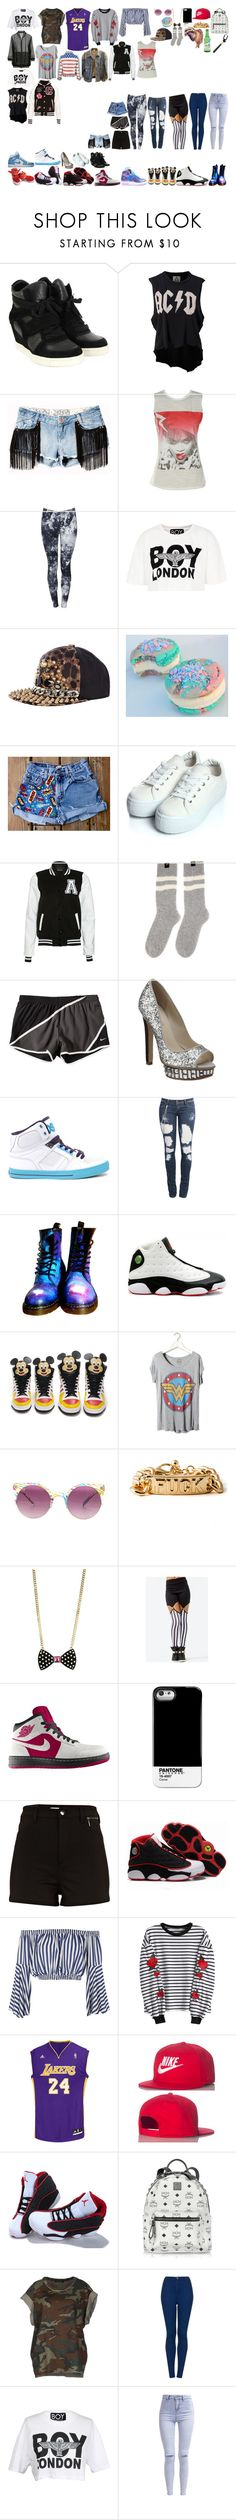 """""""Packing for Tour"""" by kaelighofficial ❤ liked on Polyvore featuring Ash, UNIF, Pull&Bear, BOY London, River Island, Cotton Candy, Boohoo, Modo, Flouzen and NIKE"""